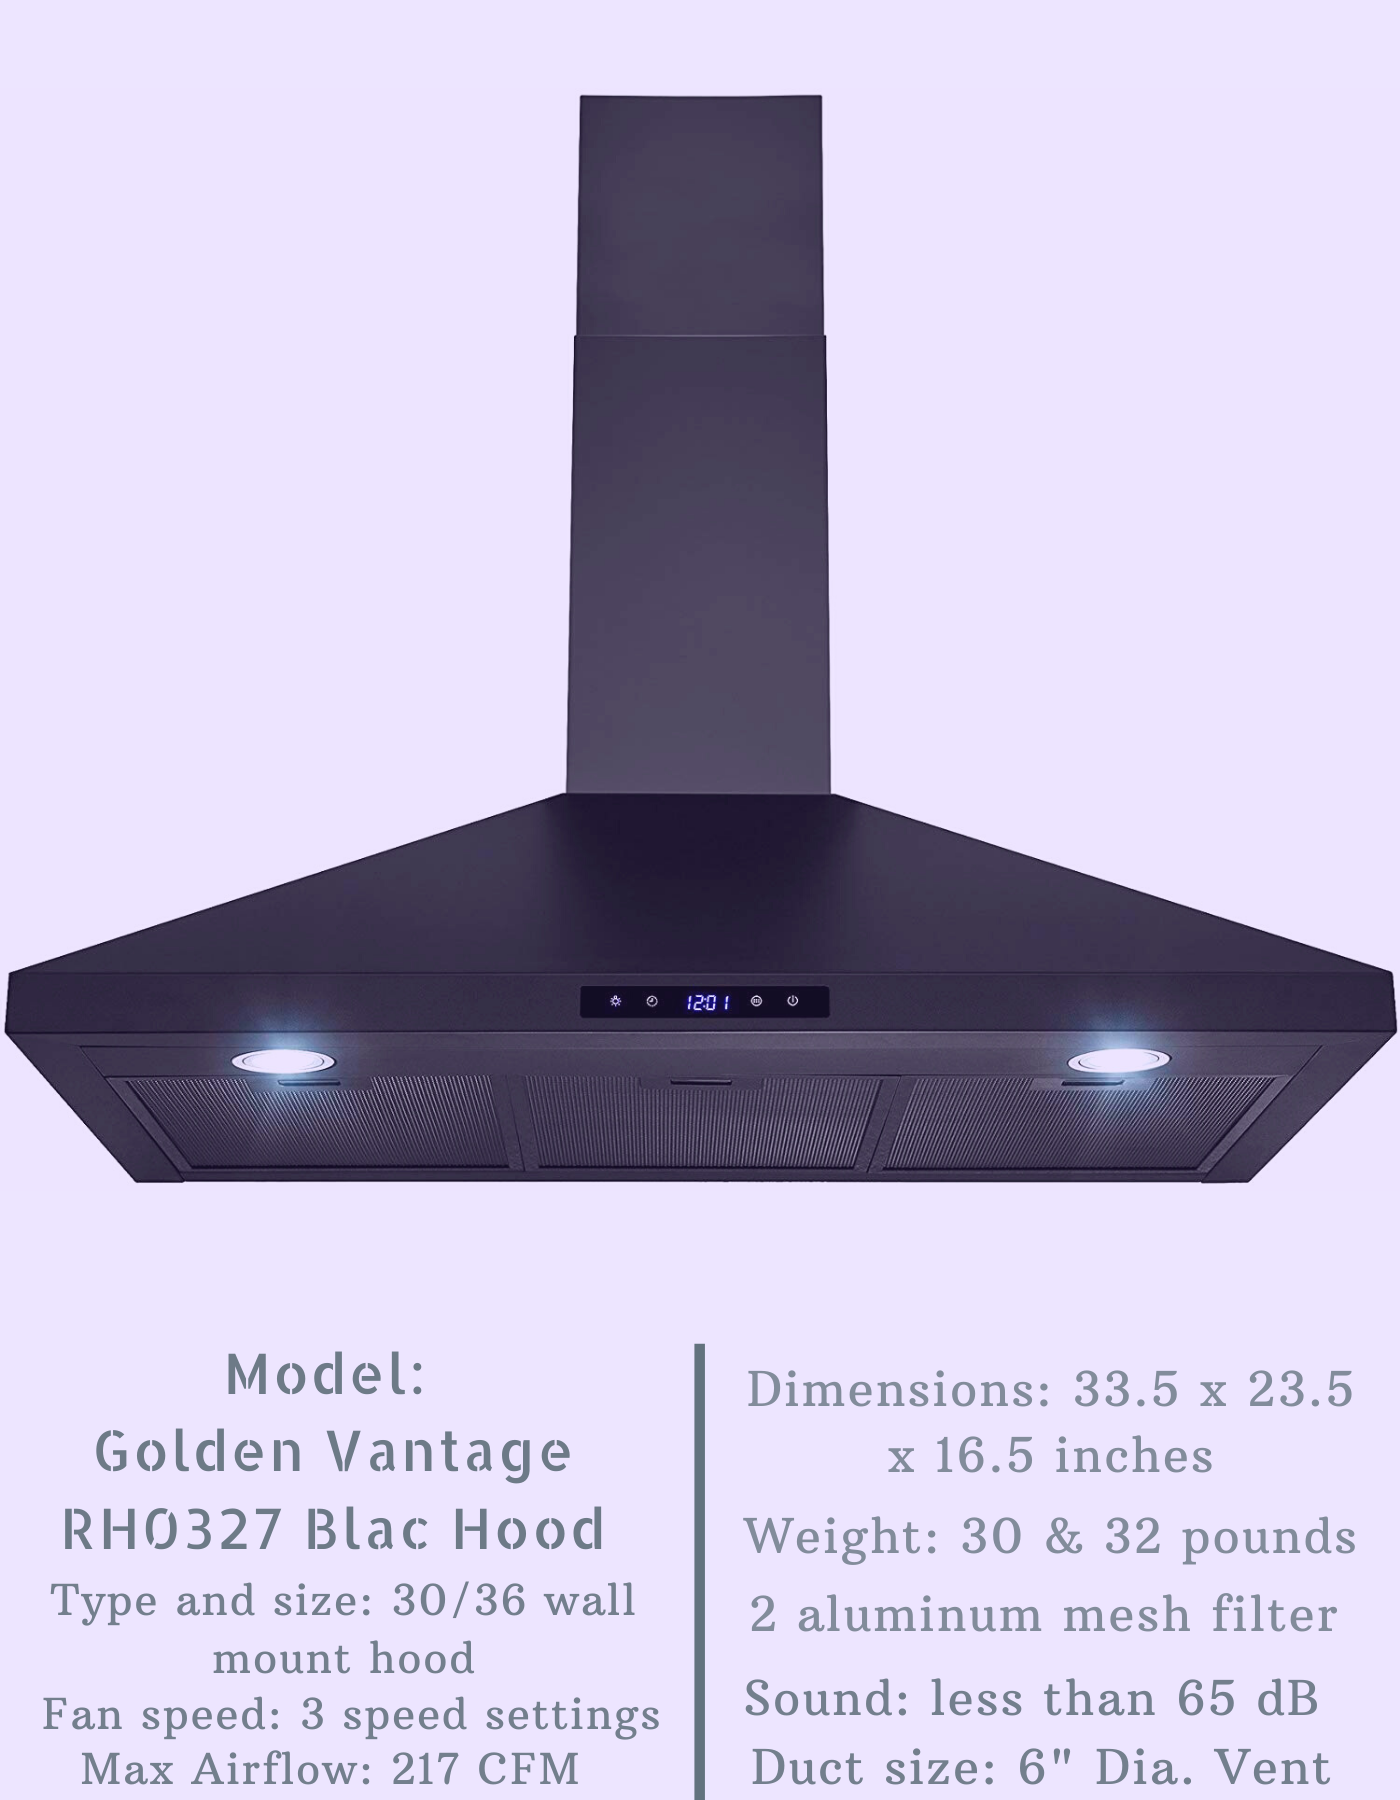 Golden Vantage Rh0327 Black Range Hood In 2020 Wall Mount Range Hood Range Hood Reviews Range Hood